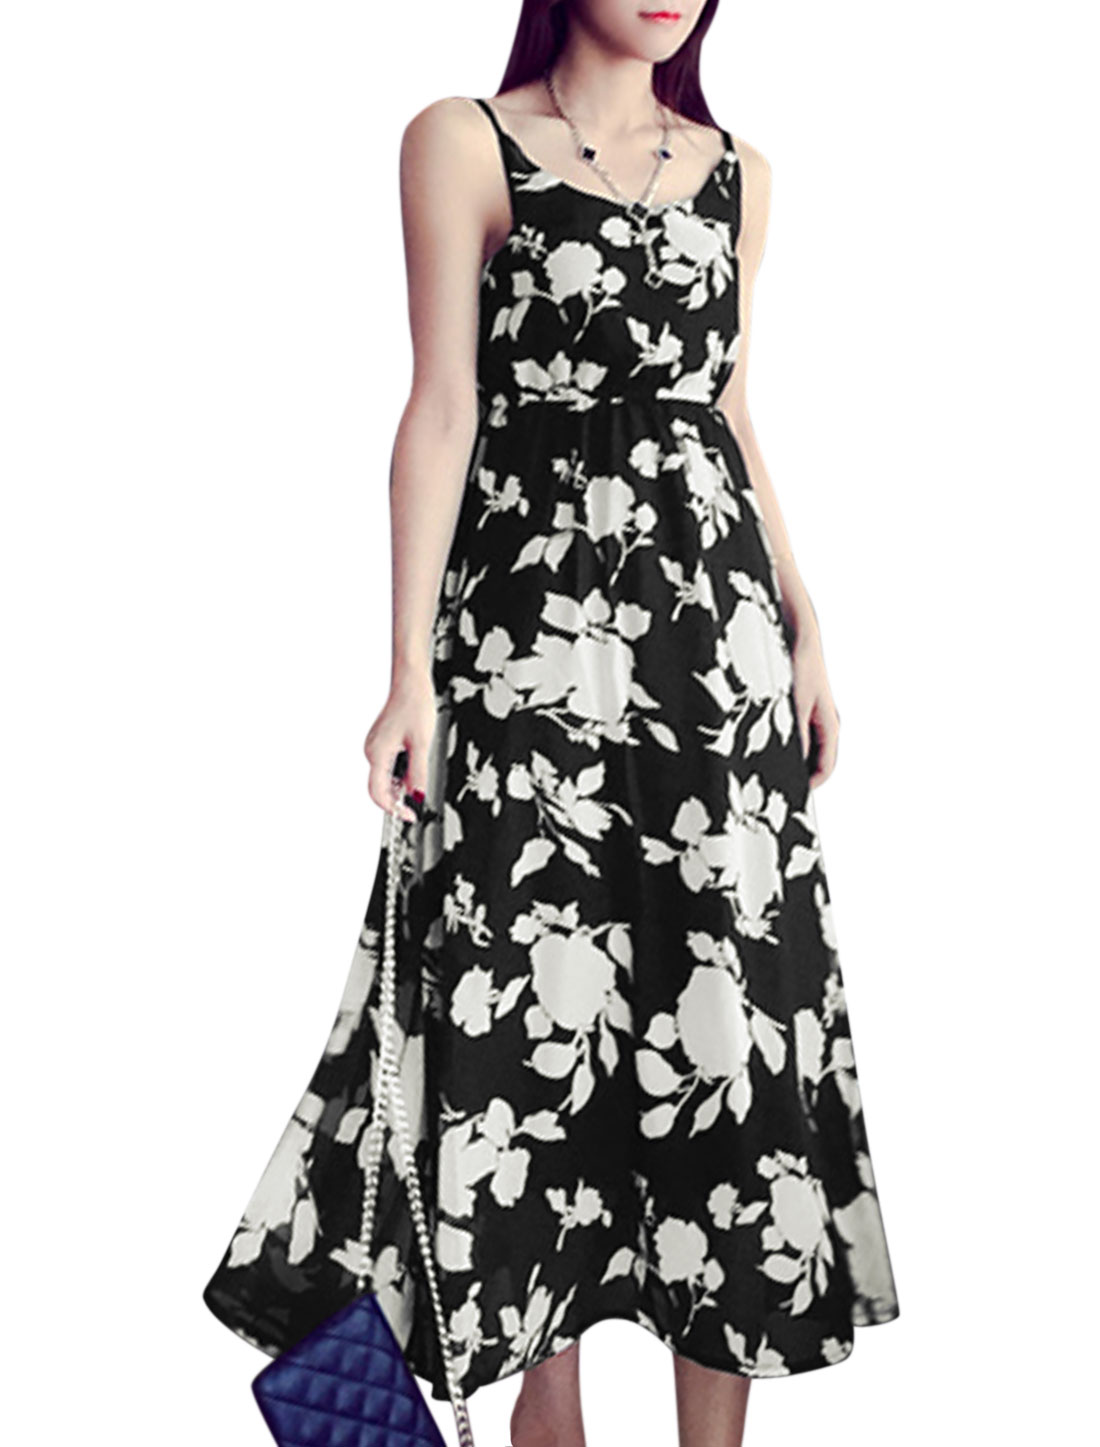 Women Floral Prints Sleeveless Elastic Waist Midi Dress Black XS